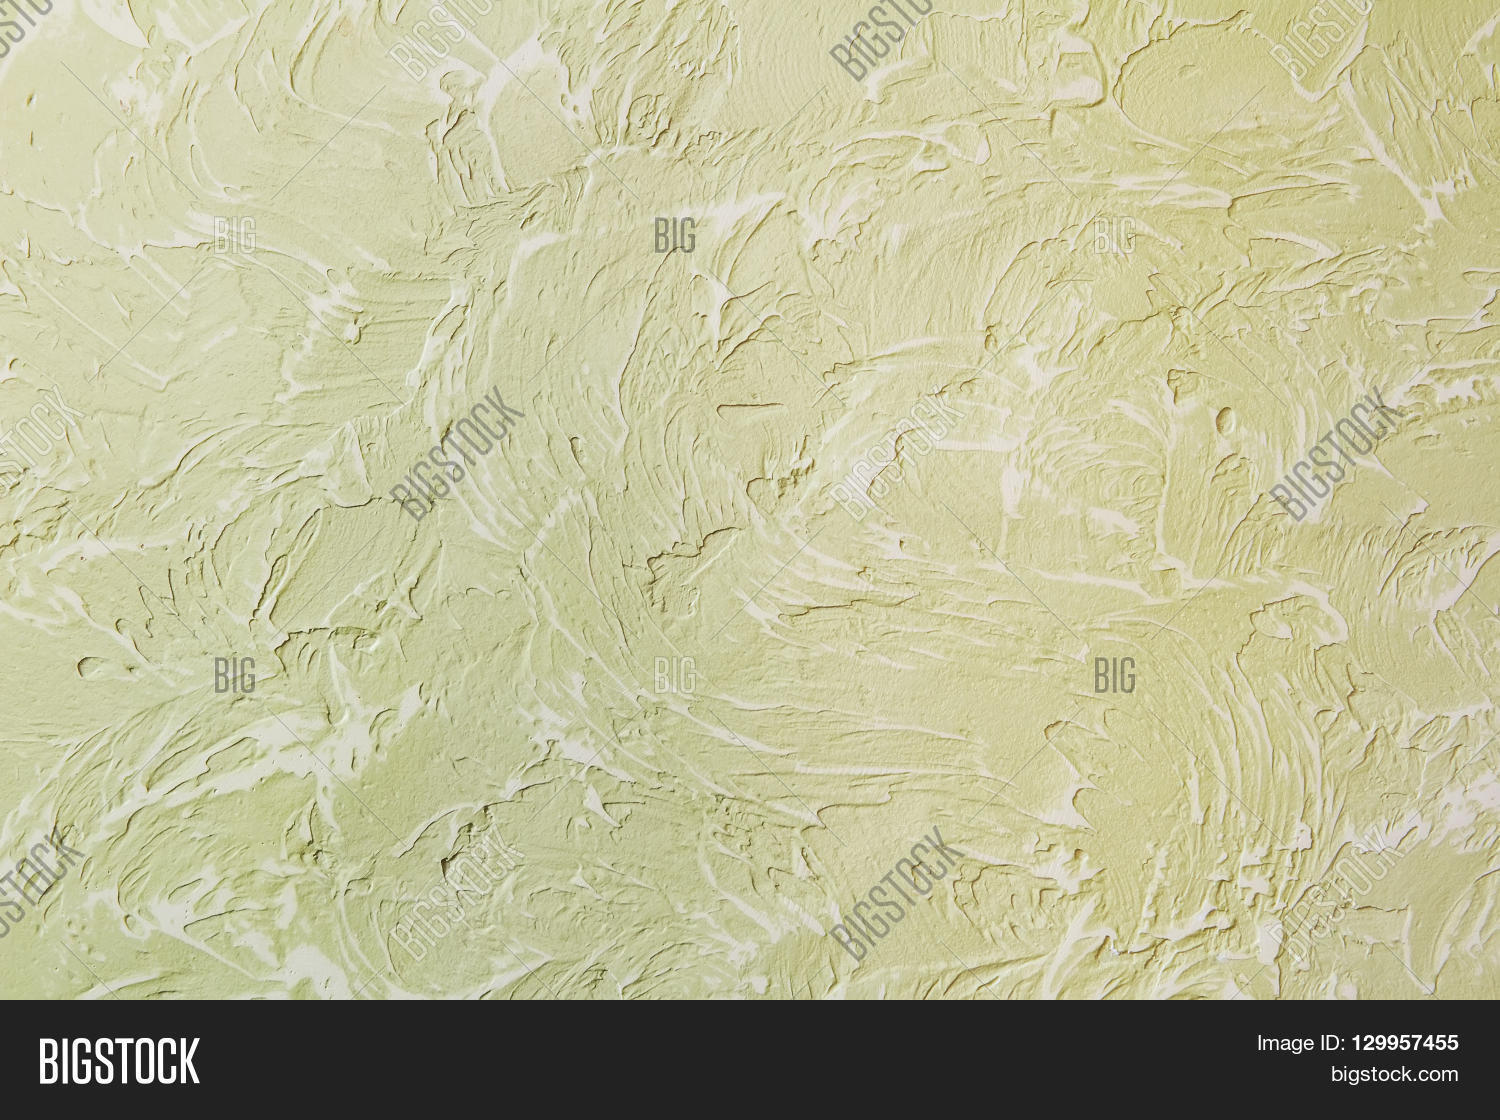 Old Paint On Wall Image & Photo (Free Trial) | Bigstock